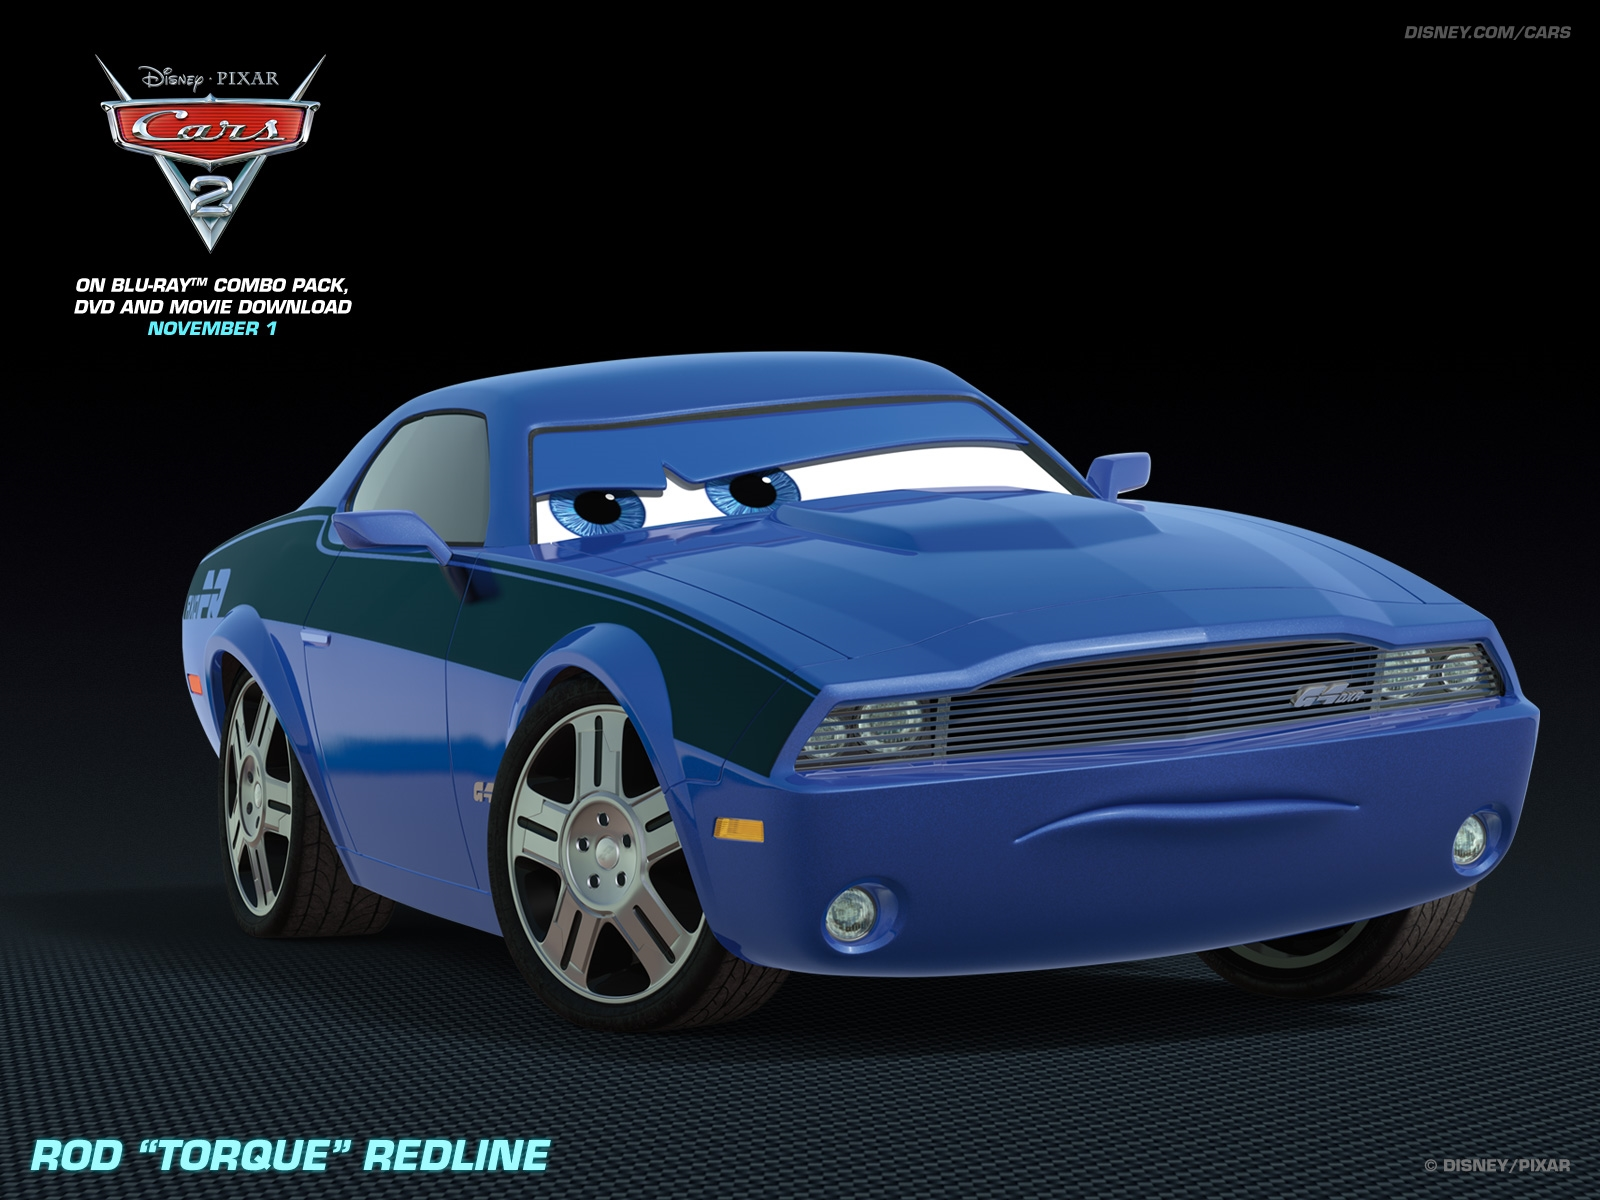 rod torque redline disney pixar cars 2 free hd wallpaper 1600 1200